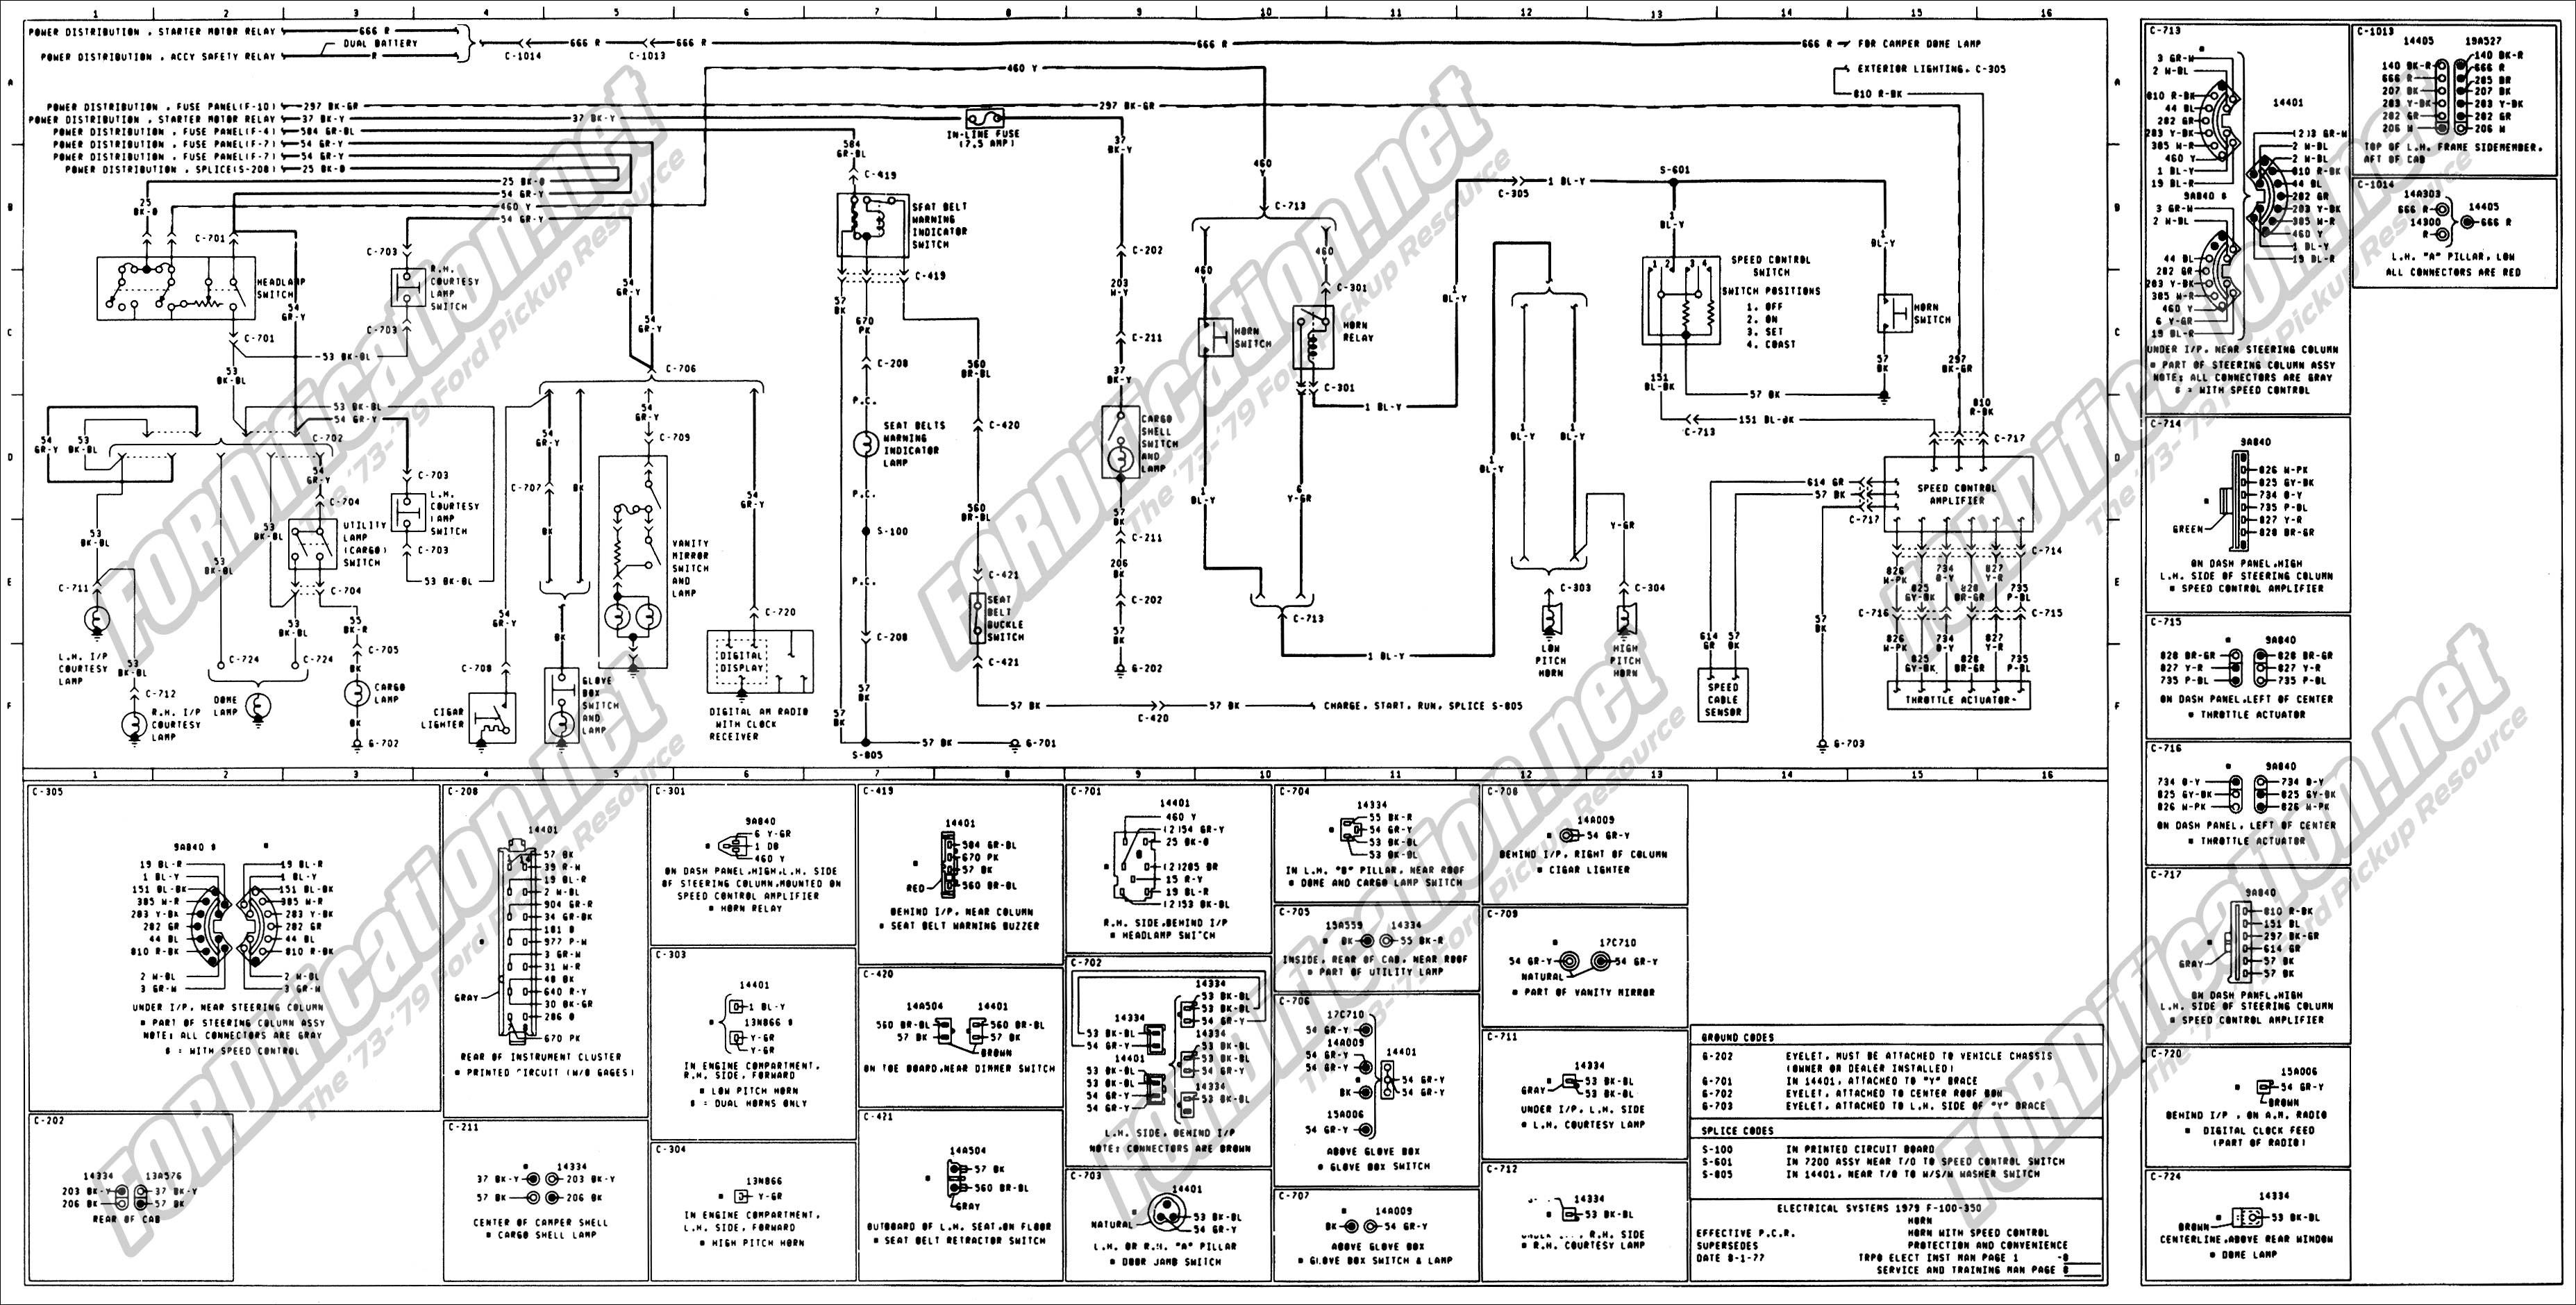 2004 ford f150 engine diagram 1973 1979 ford truck wiring diagrams rh detoxicrecenze com Ford 5.4 Engine Parts Diagram 1999 Ford 5.4L Engine Diagram